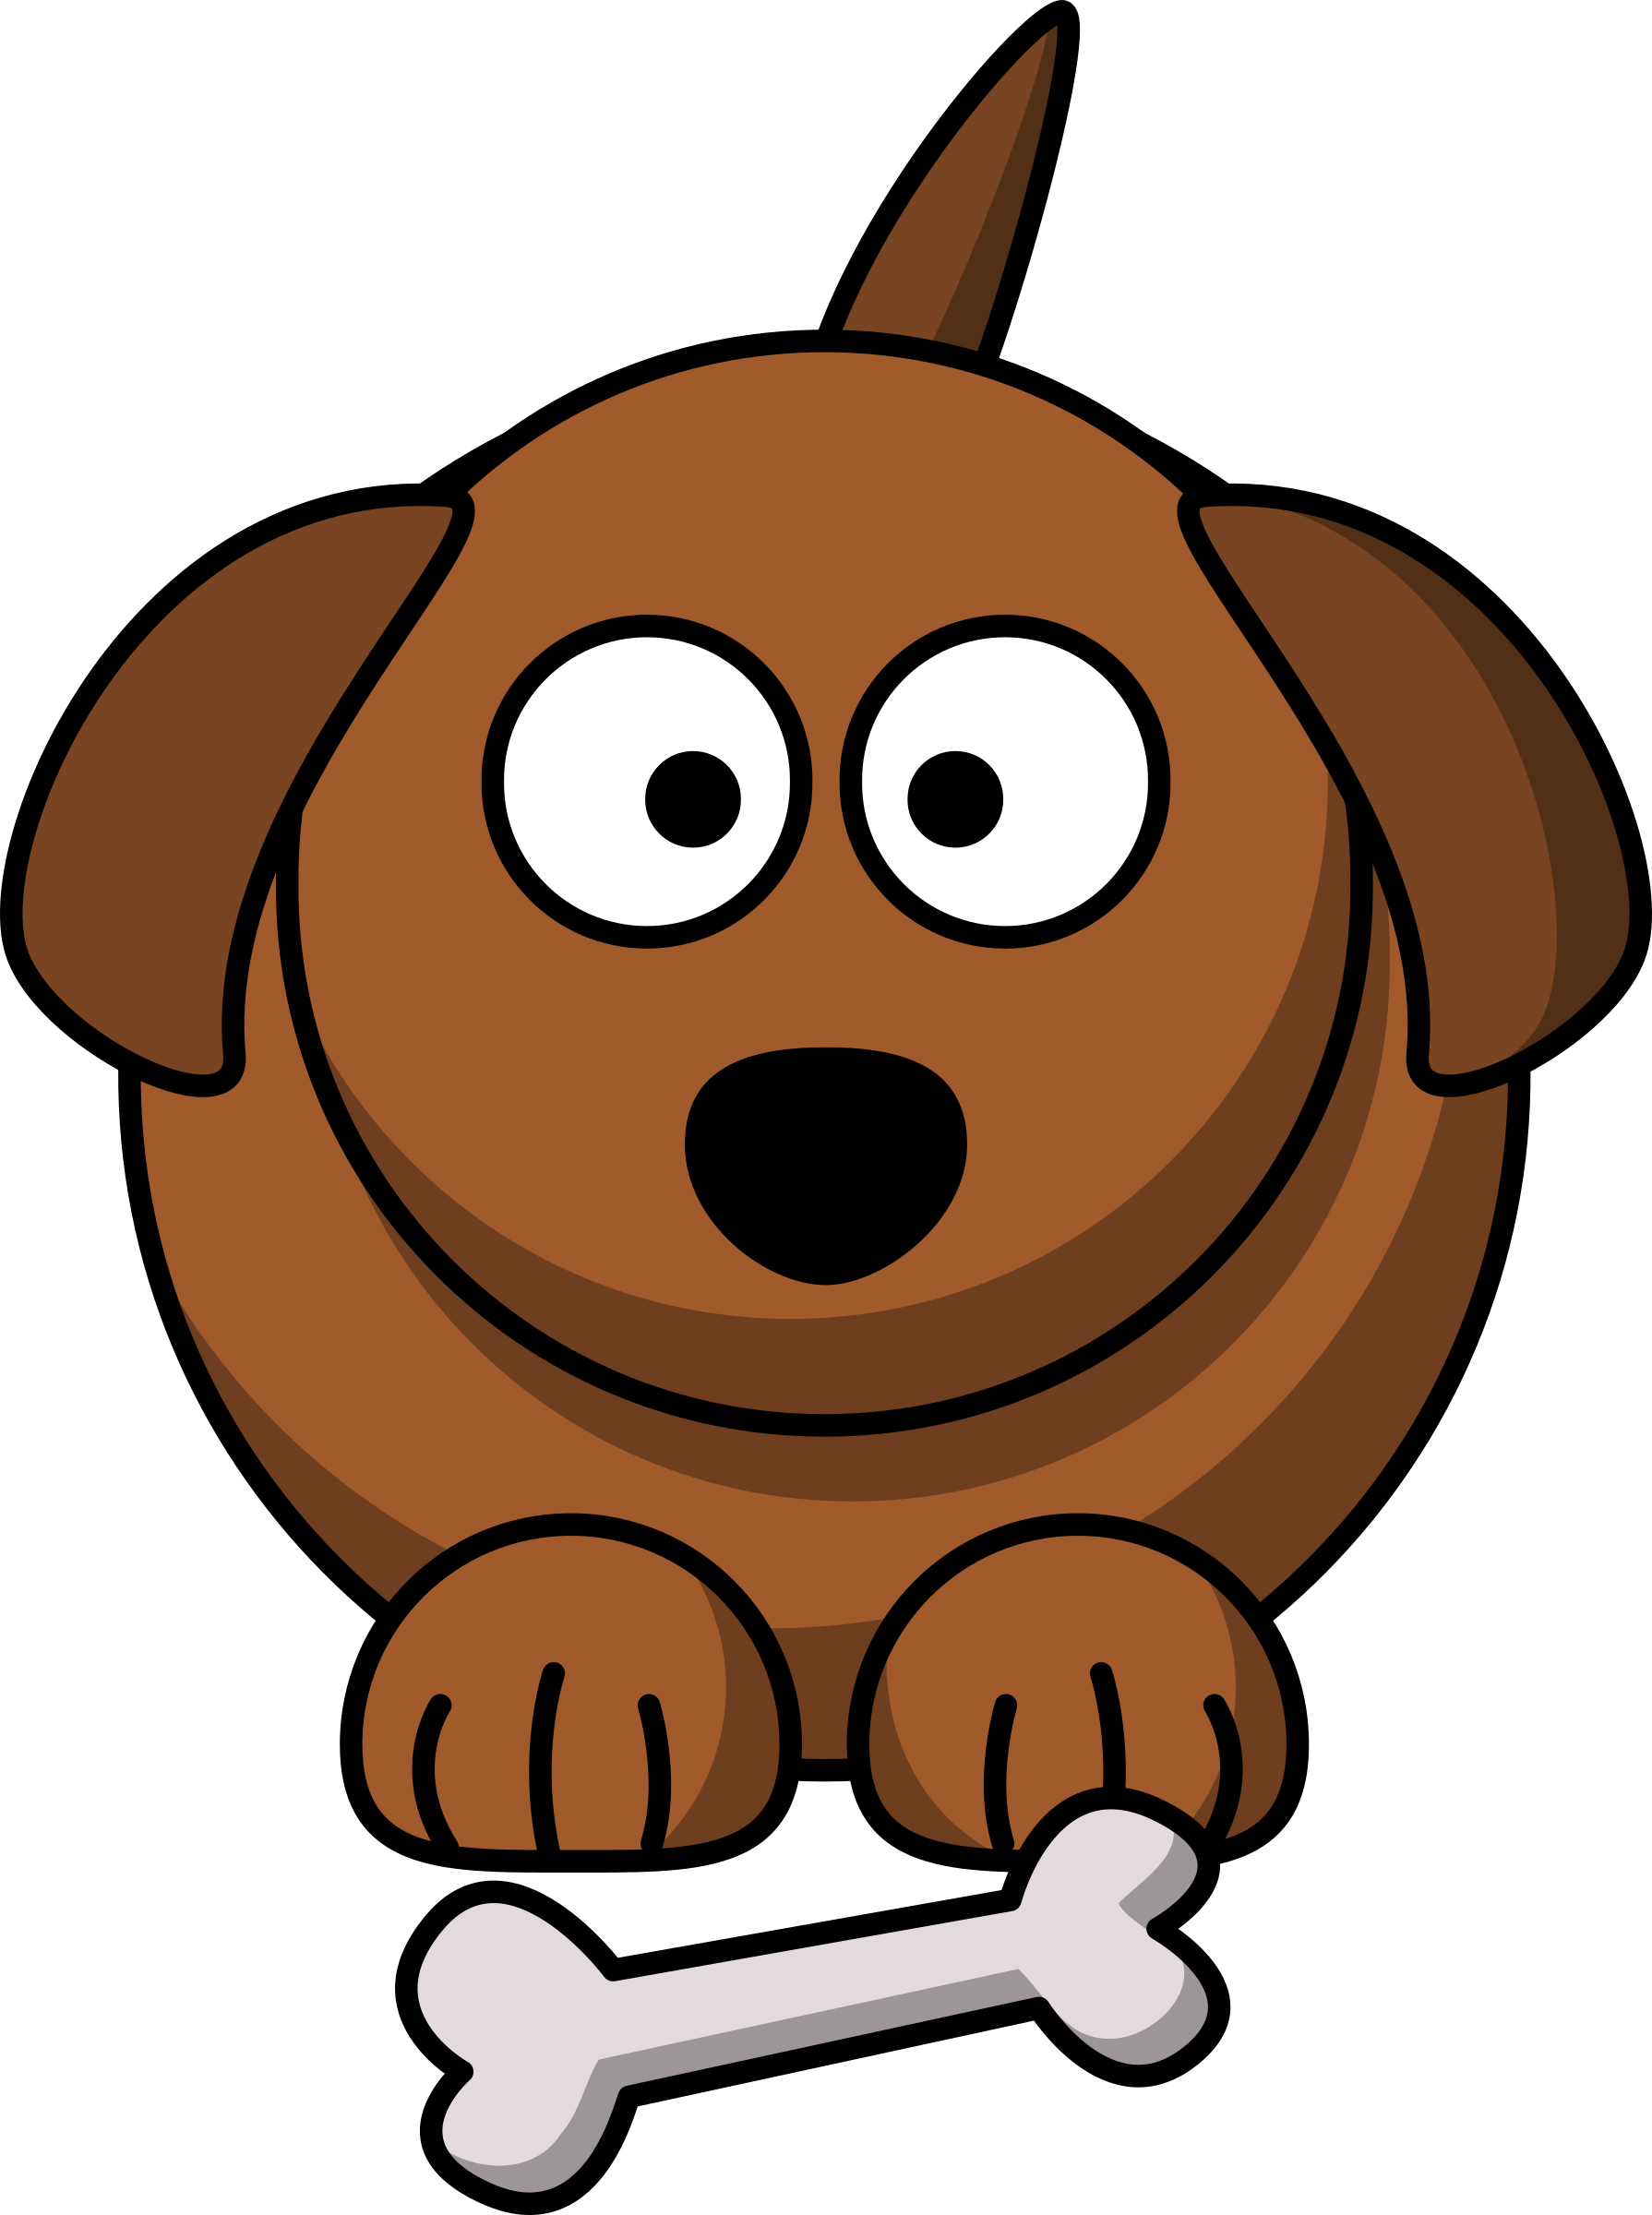 Circle clipart cartoon. Dog bones images on